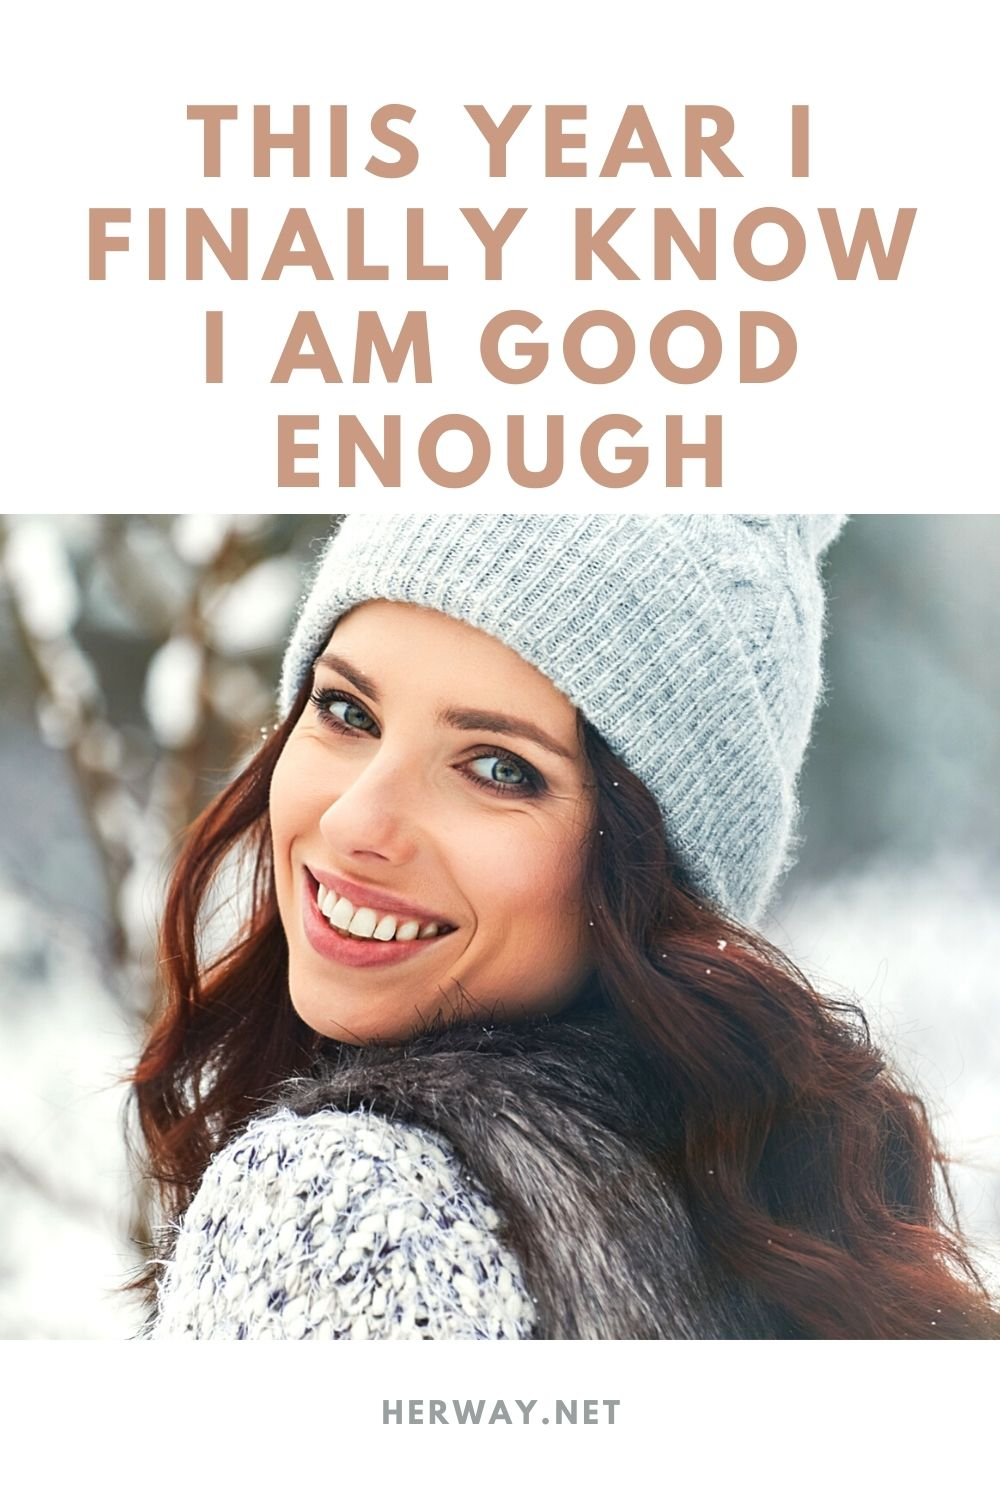 This Year I Finally Know I Am Good Enough